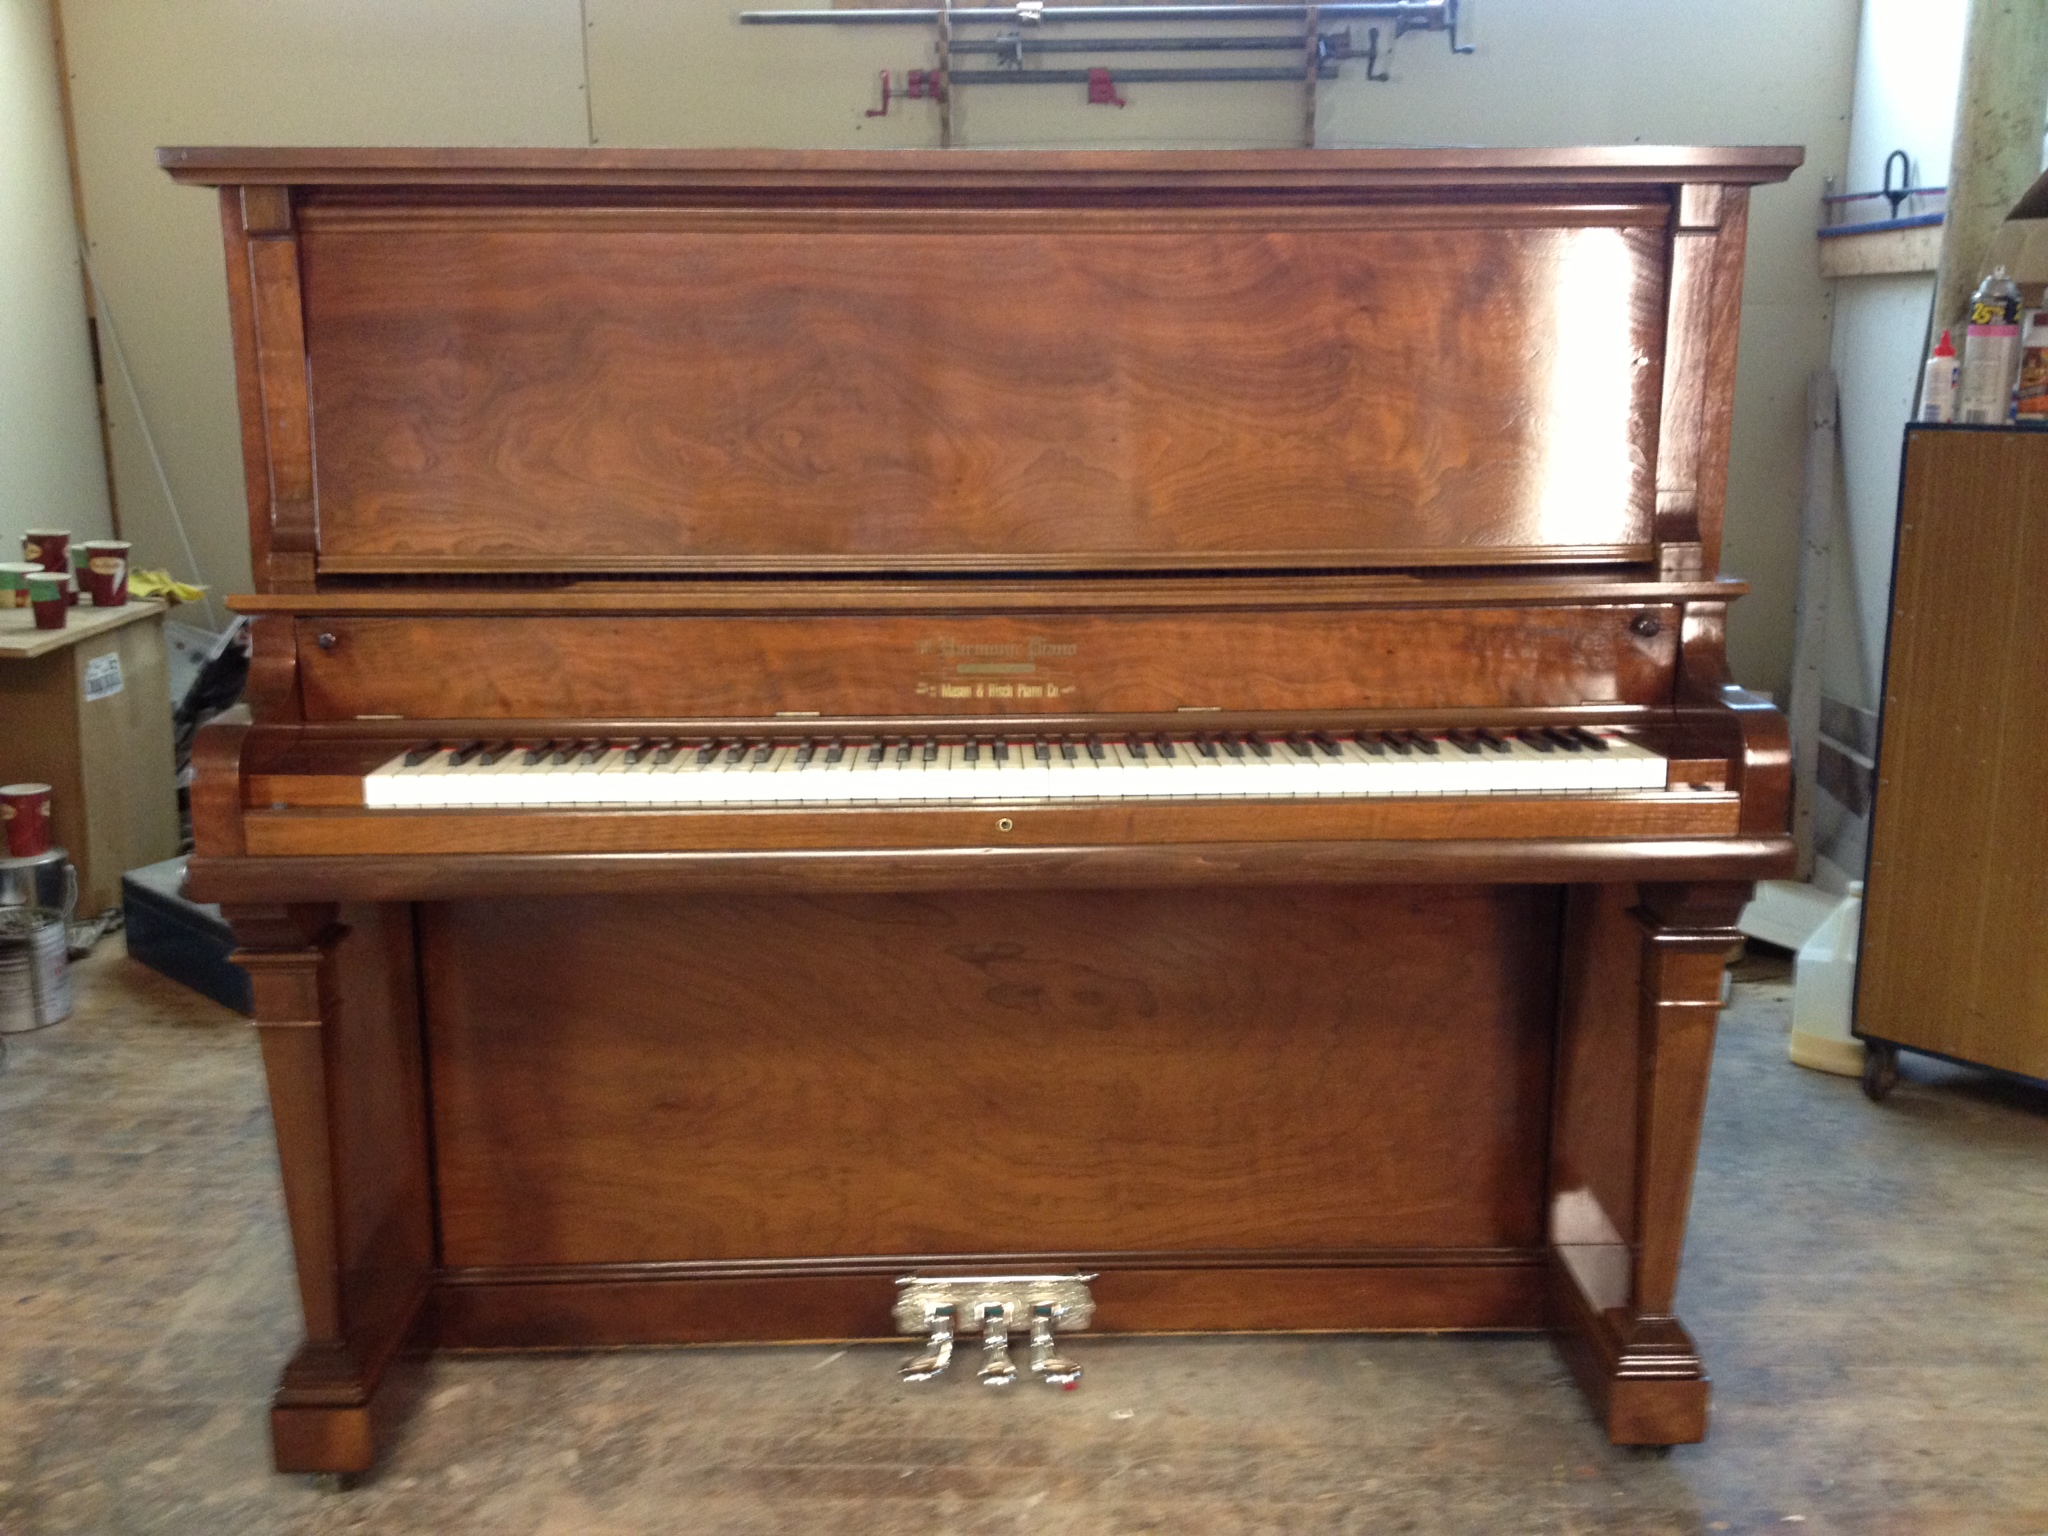 A beautifully refinished piano.